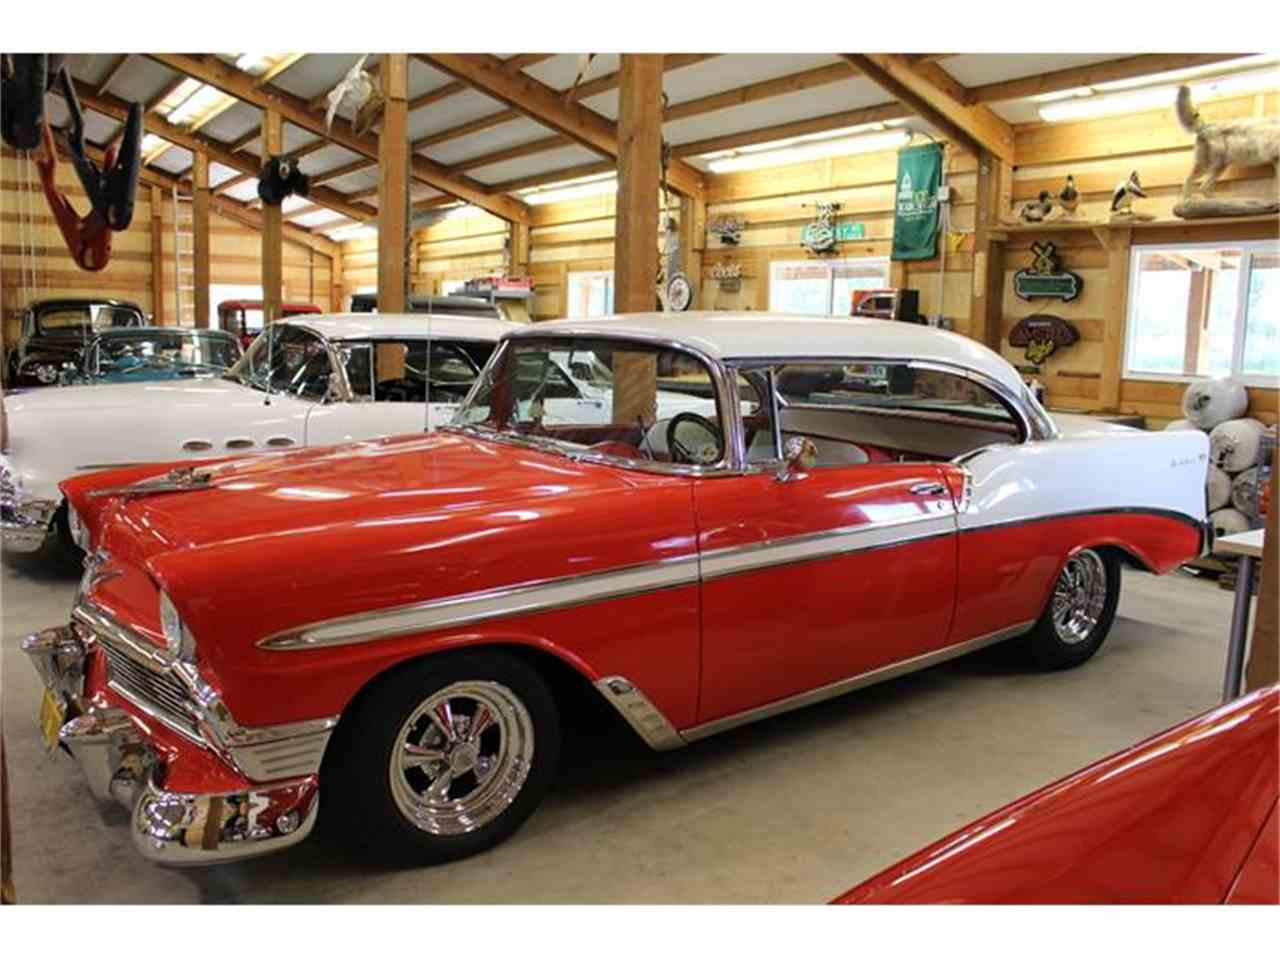 1956 chevrolet bel air for sale classic car liquidators - 1956 Chevrolet Bel Air For Sale Cc 691323